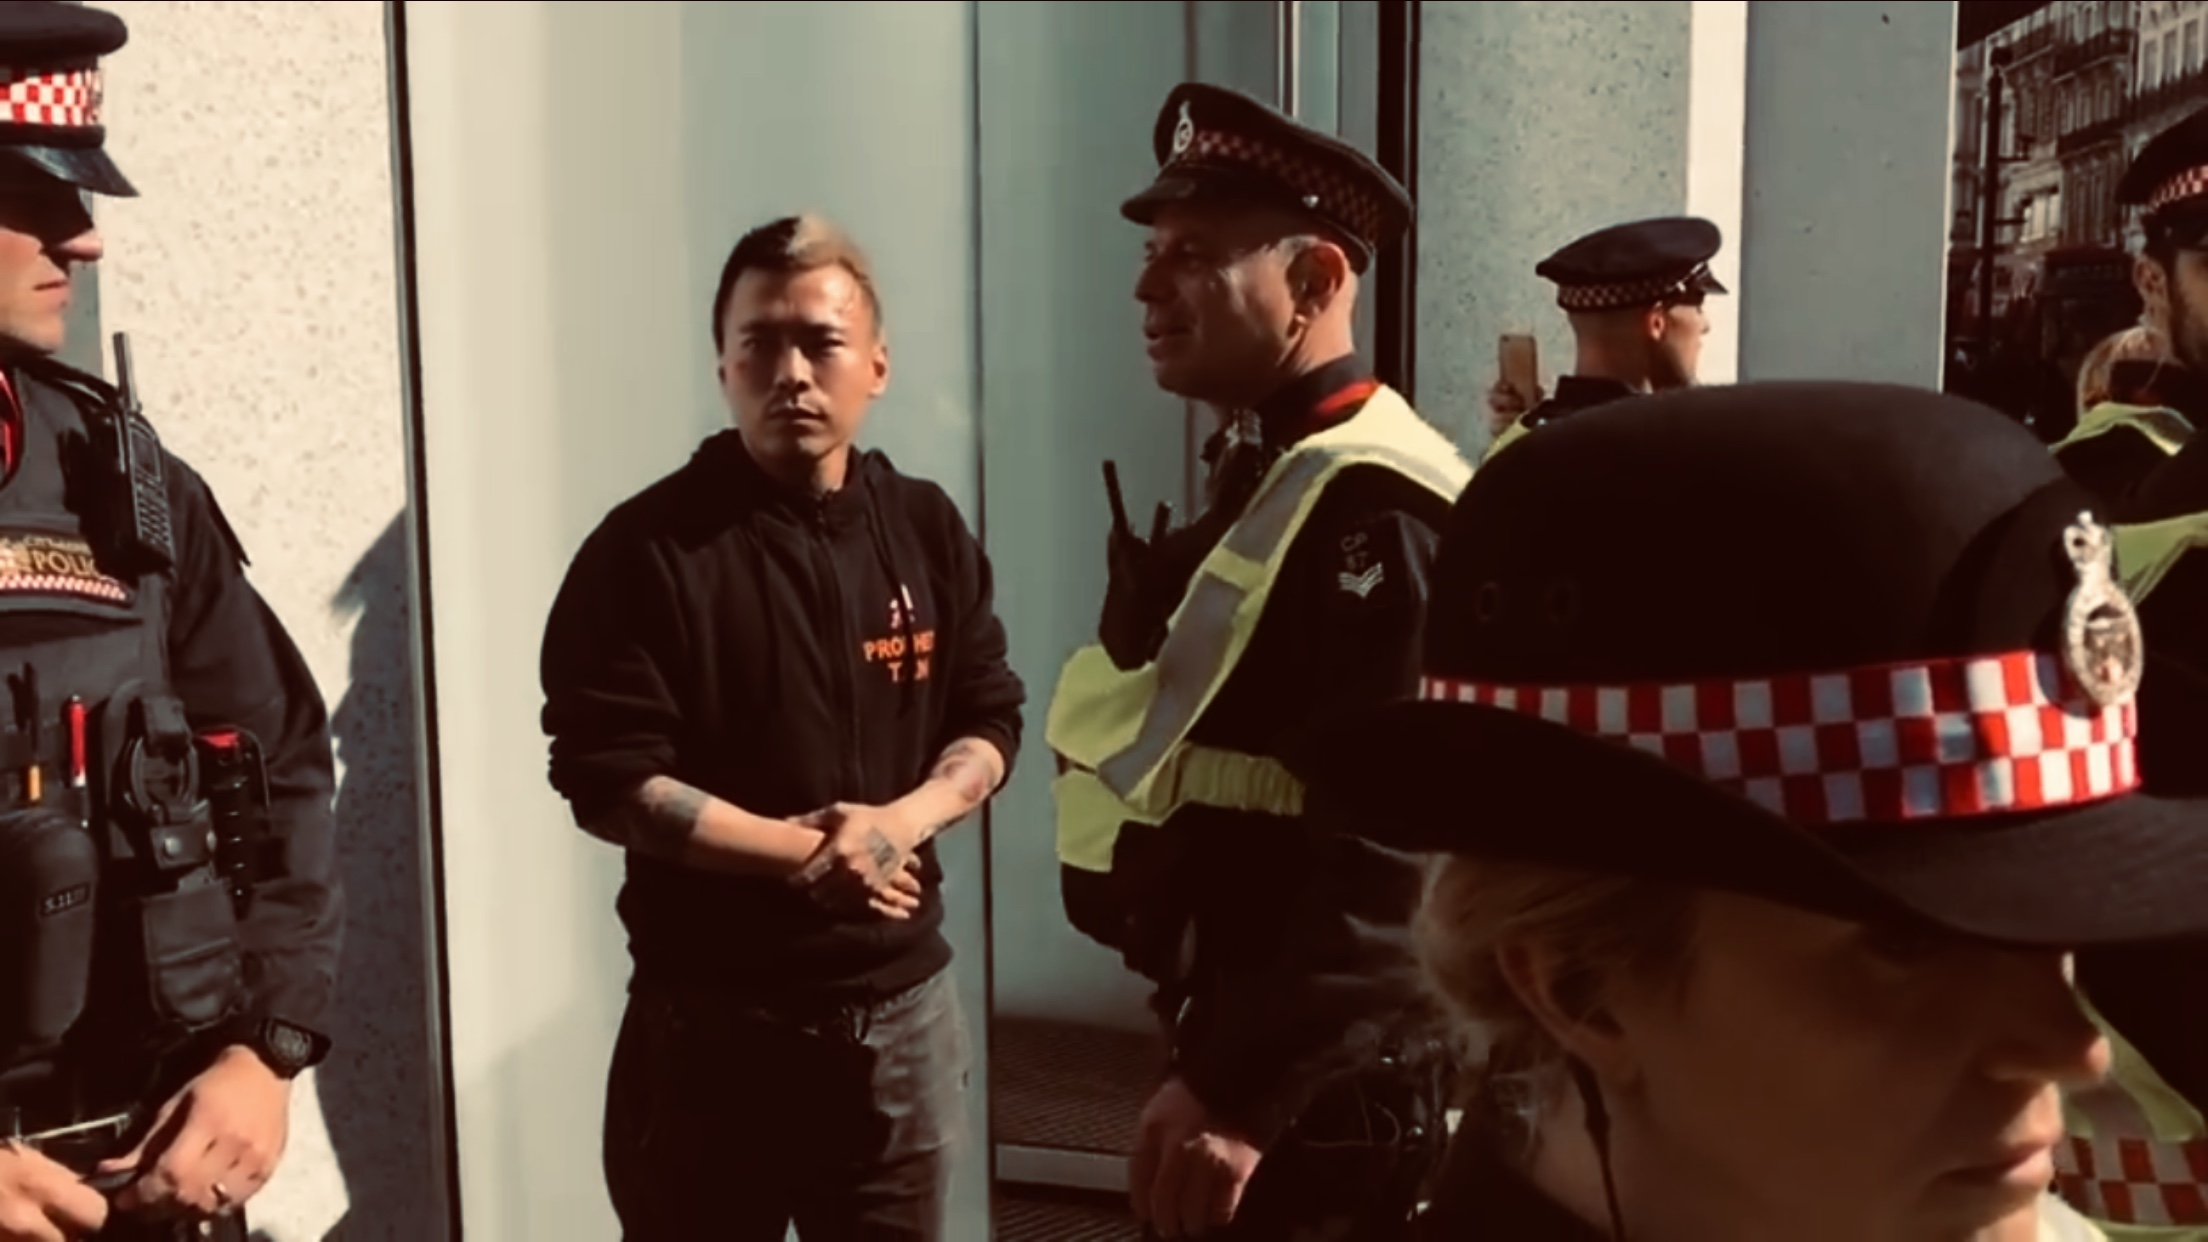 What happened on Thursday in 27/9/18 is the inauguration of (PBUH) Tan of Tango assuming command of the  SS Officers  of United Kingdom. A picture paints a thousand words; a motion picture?   Watch it for yourself!    Why did officer put Tan's hand on his chest as if he is swearing oath!?